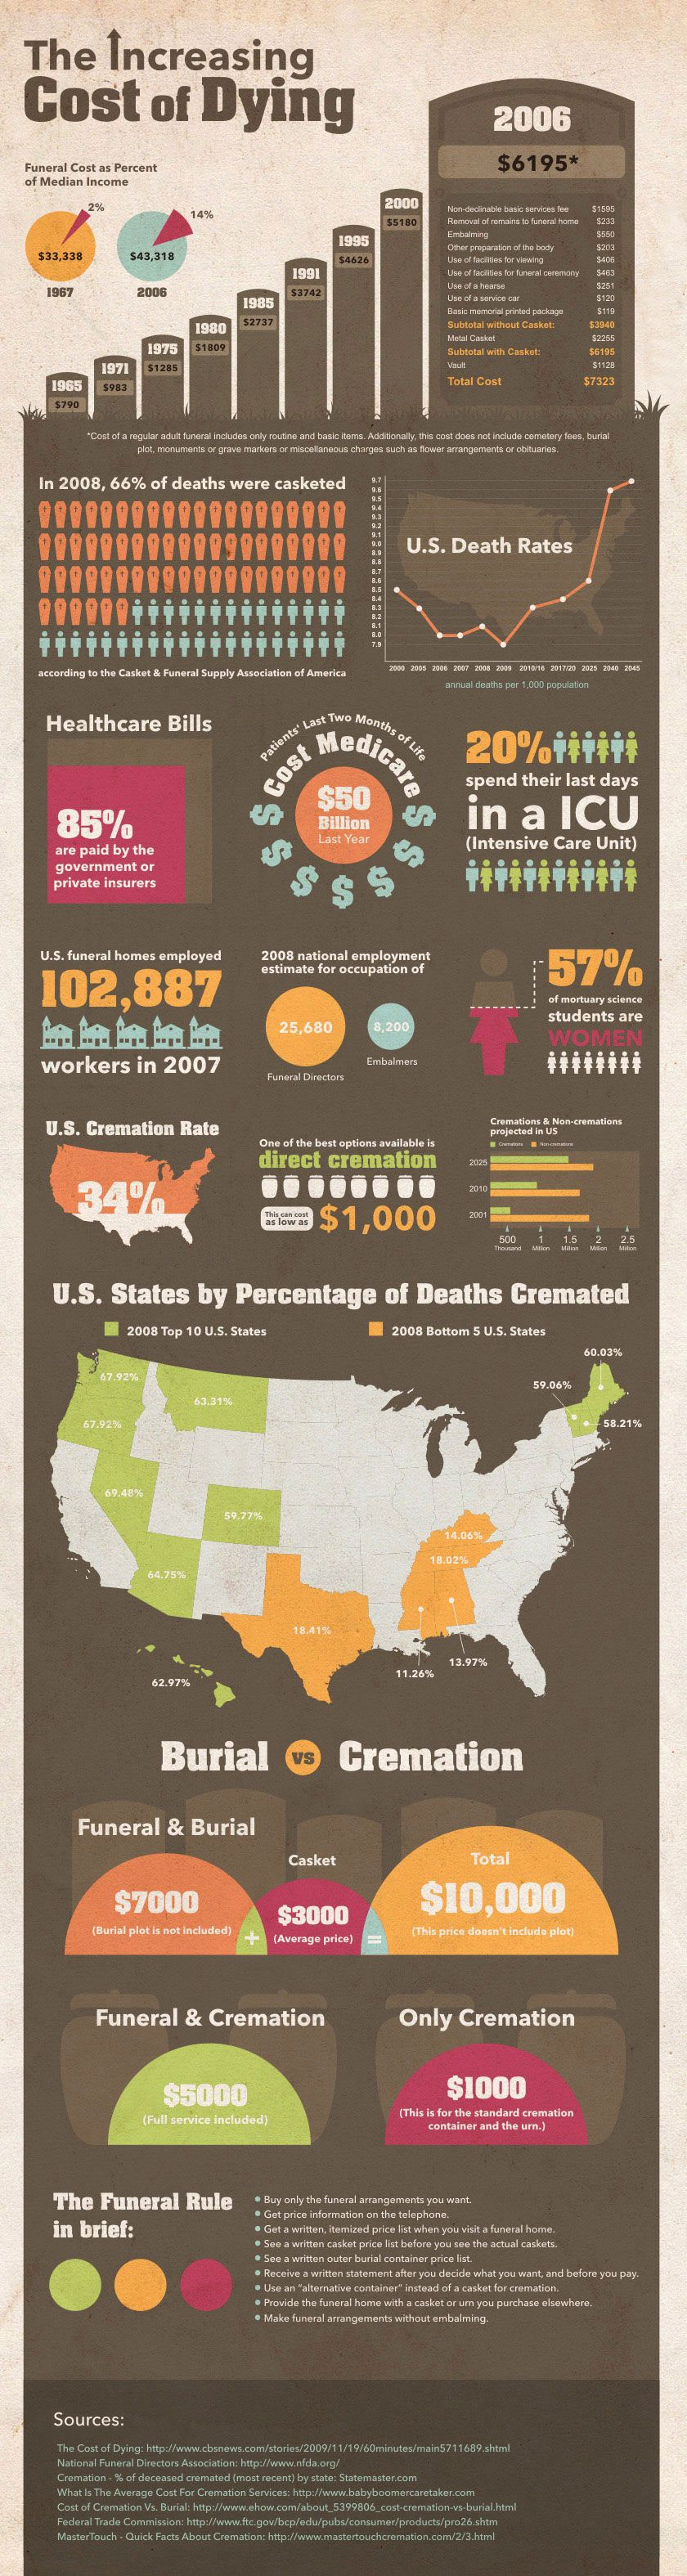 Funeral costs are going up, as are other expenses related to death. This infographic shows the incre